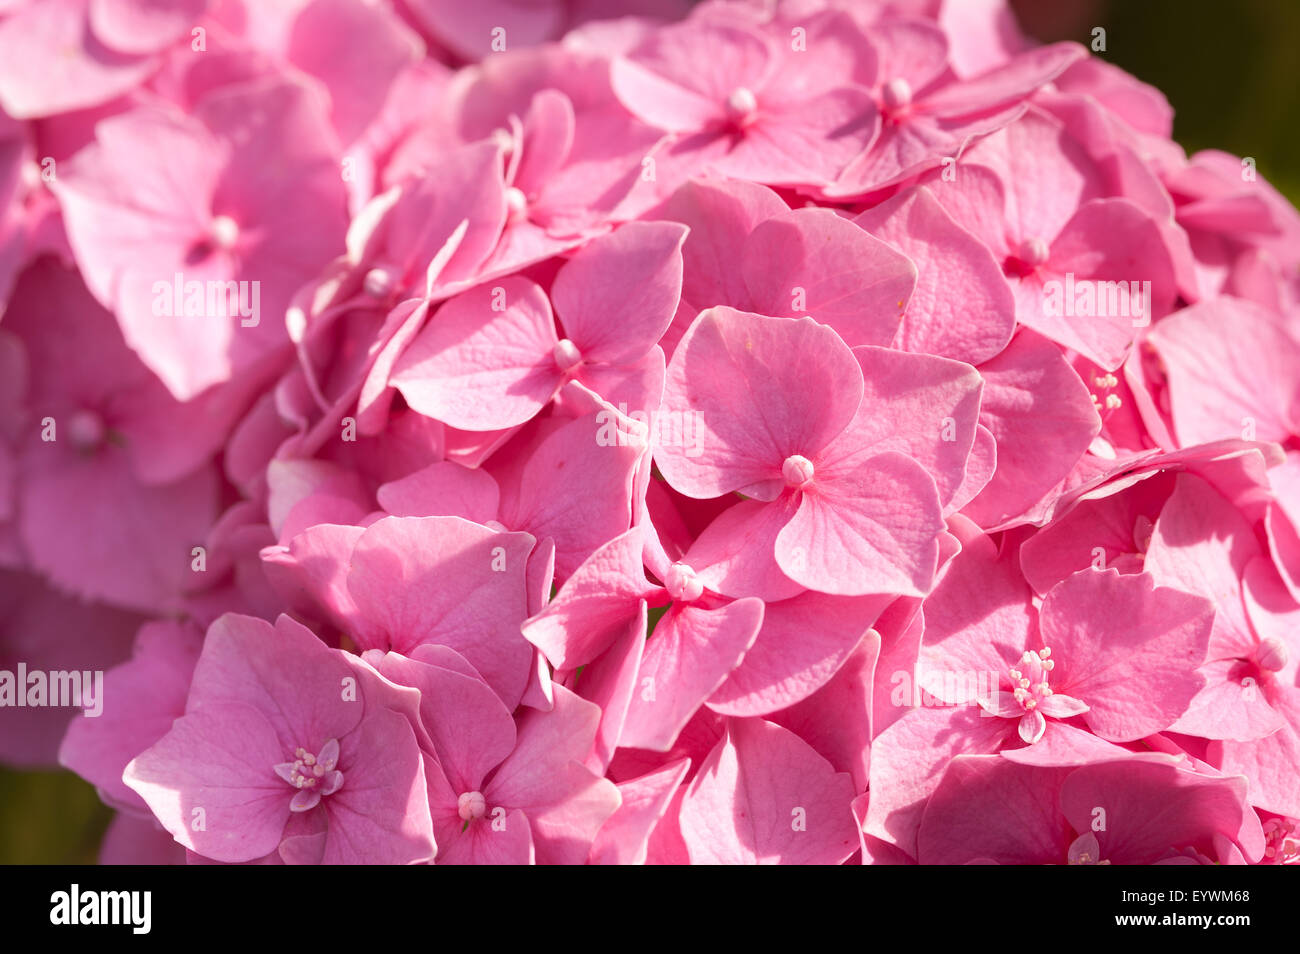 Vivid Rich Candy Pink Color Of Globe Flowers Of Hydrangea Seemingly